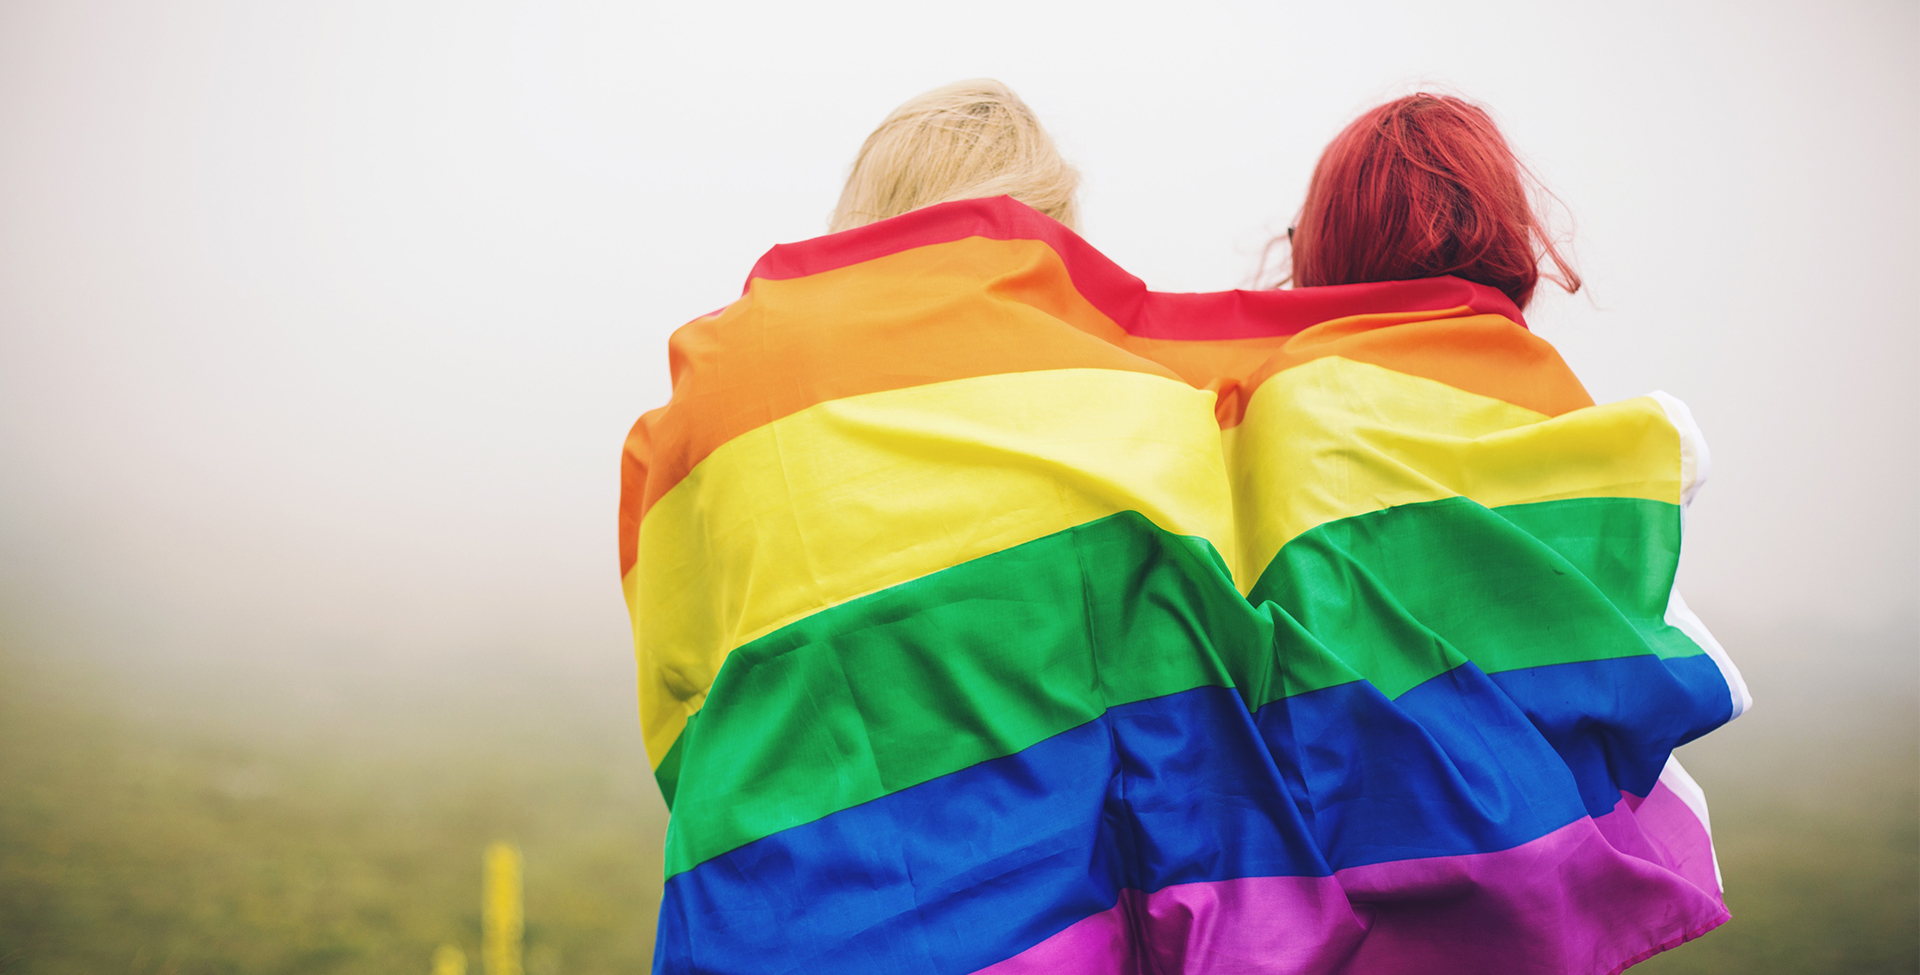 women wrapped in rainbow flag